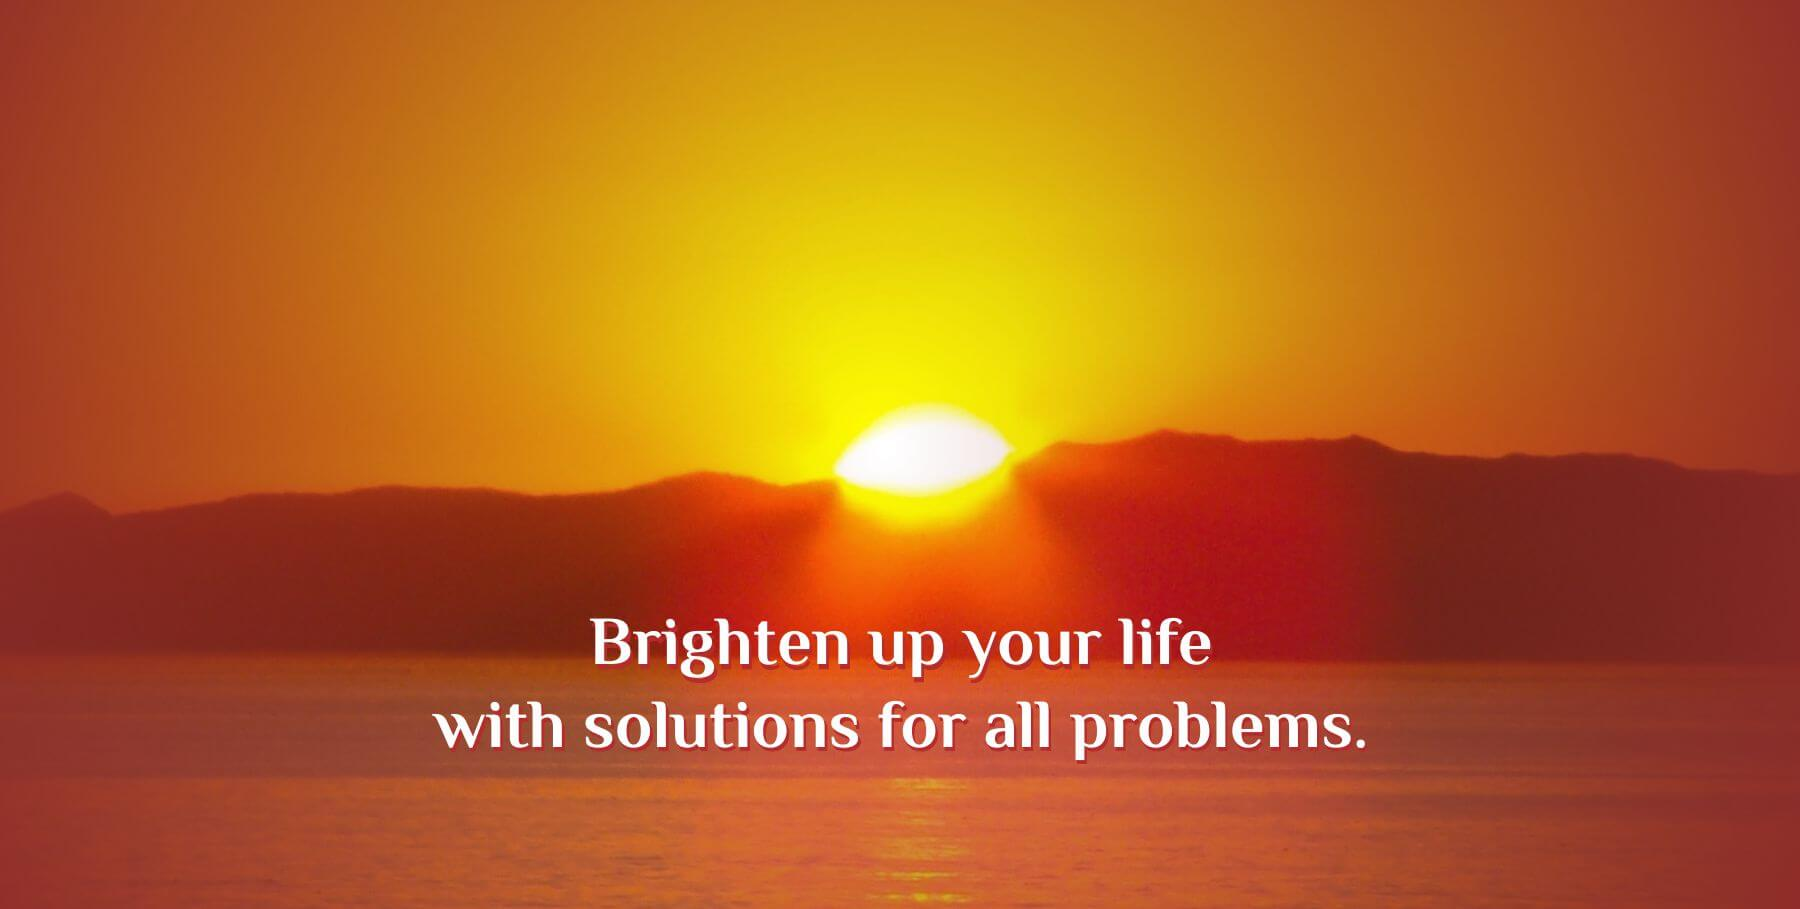 Brighten up your life with solutions for all problems.